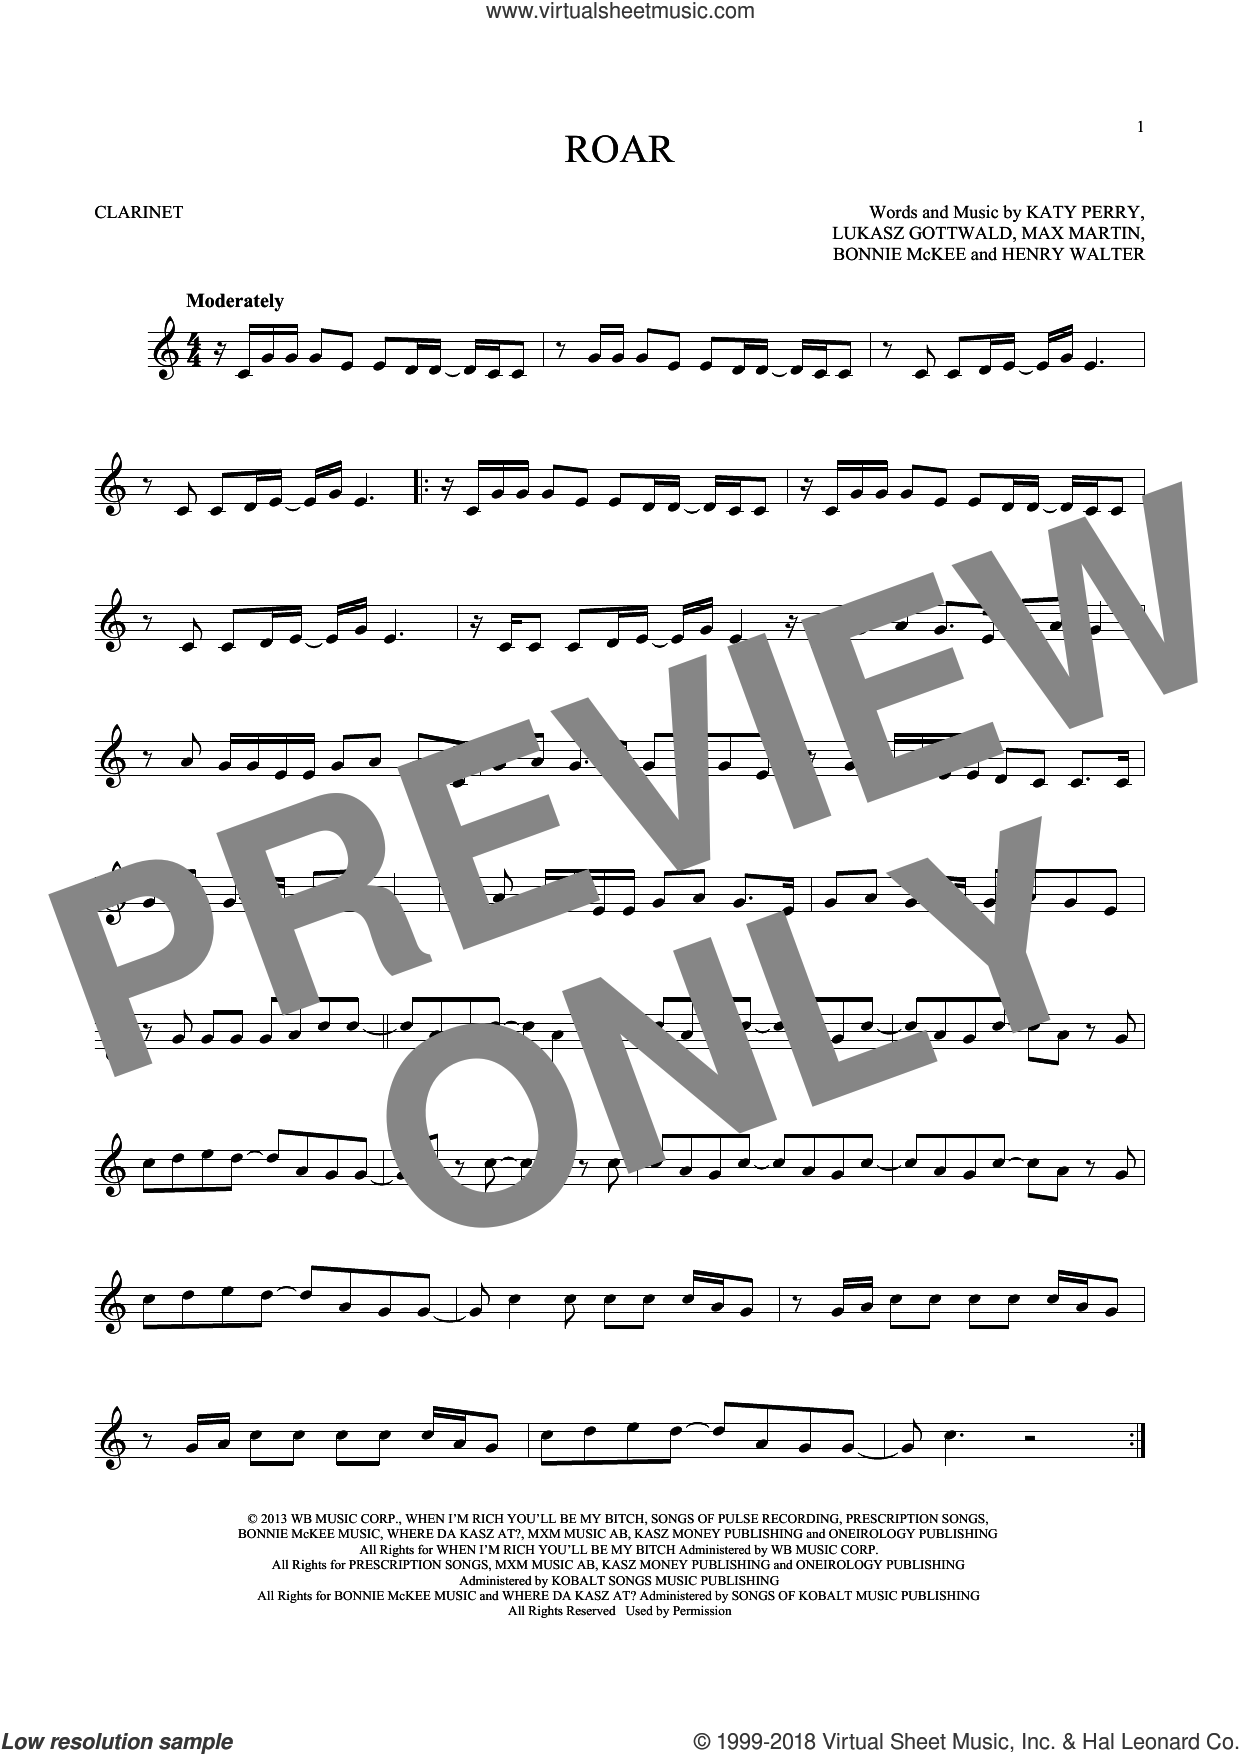 Roar sheet music for clarinet solo by Katy Perry, Bonnie McKee, Henry Walter, Lukasz Gottwald and Max Martin. Score Image Preview.